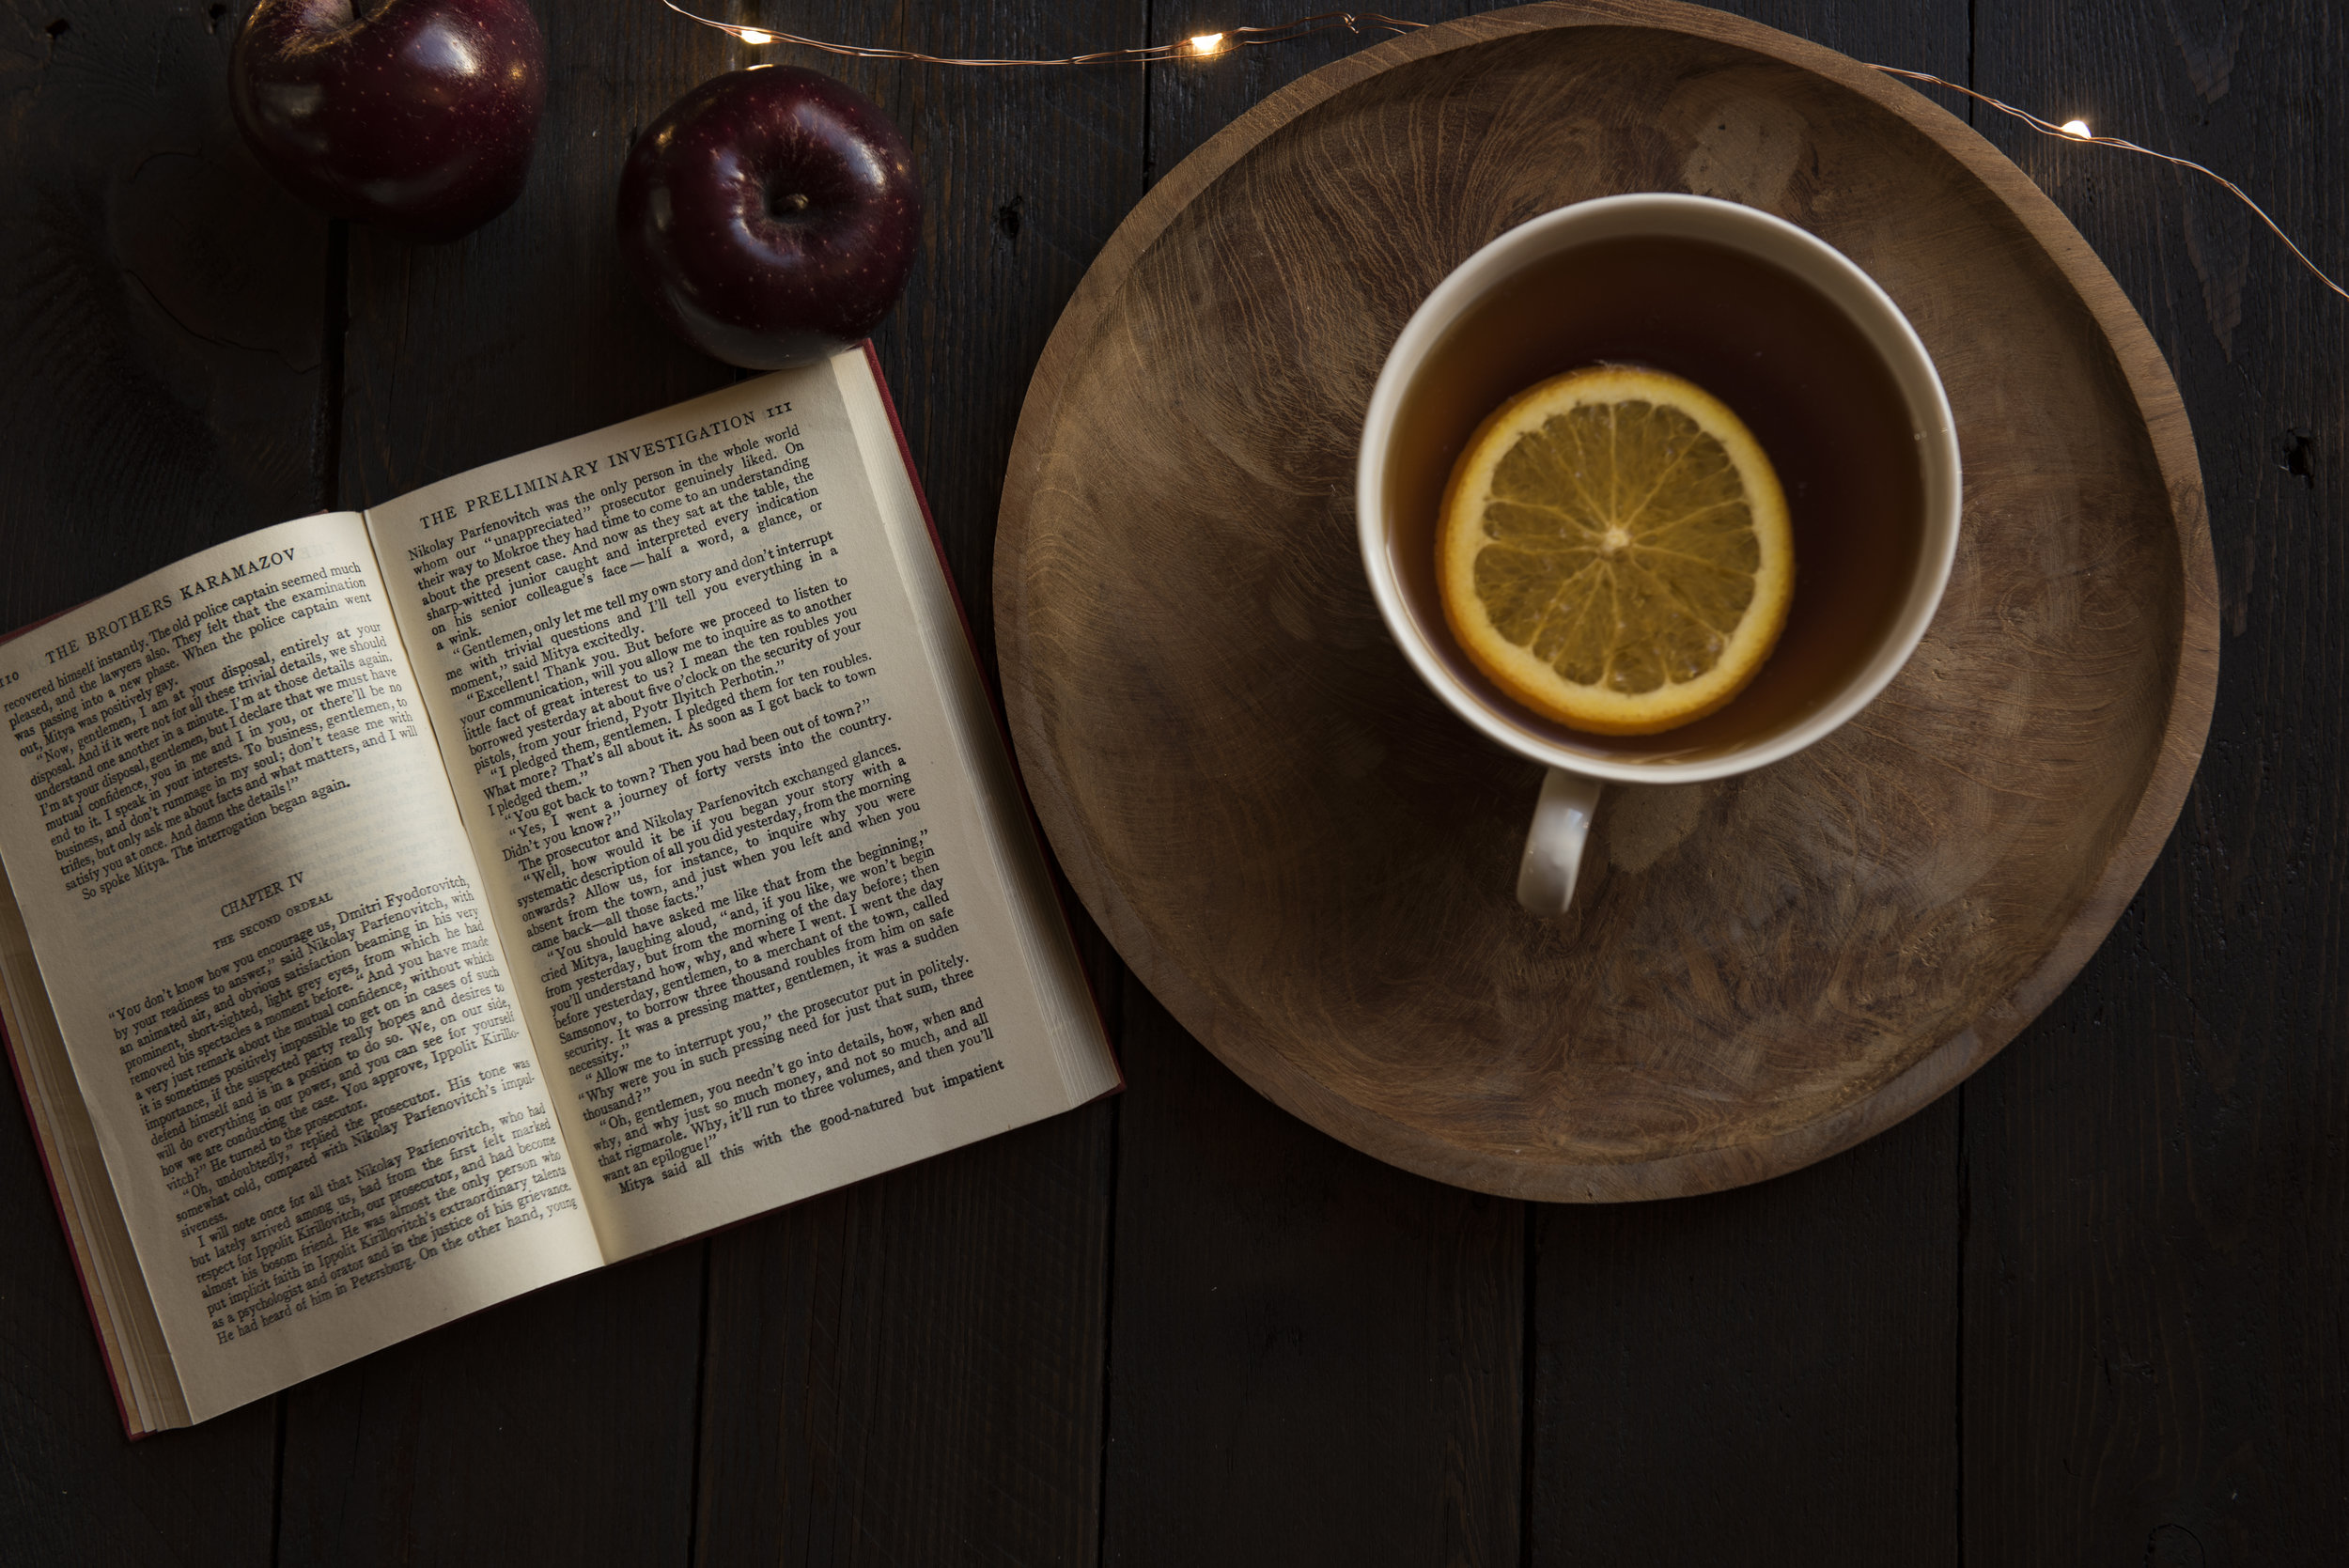 Developing and returning to small, daily self-care practices, like reading with your favorite cup of tea for 10 minutes, helps you restore and remember that you are just as important (if not more so) than your productivity.